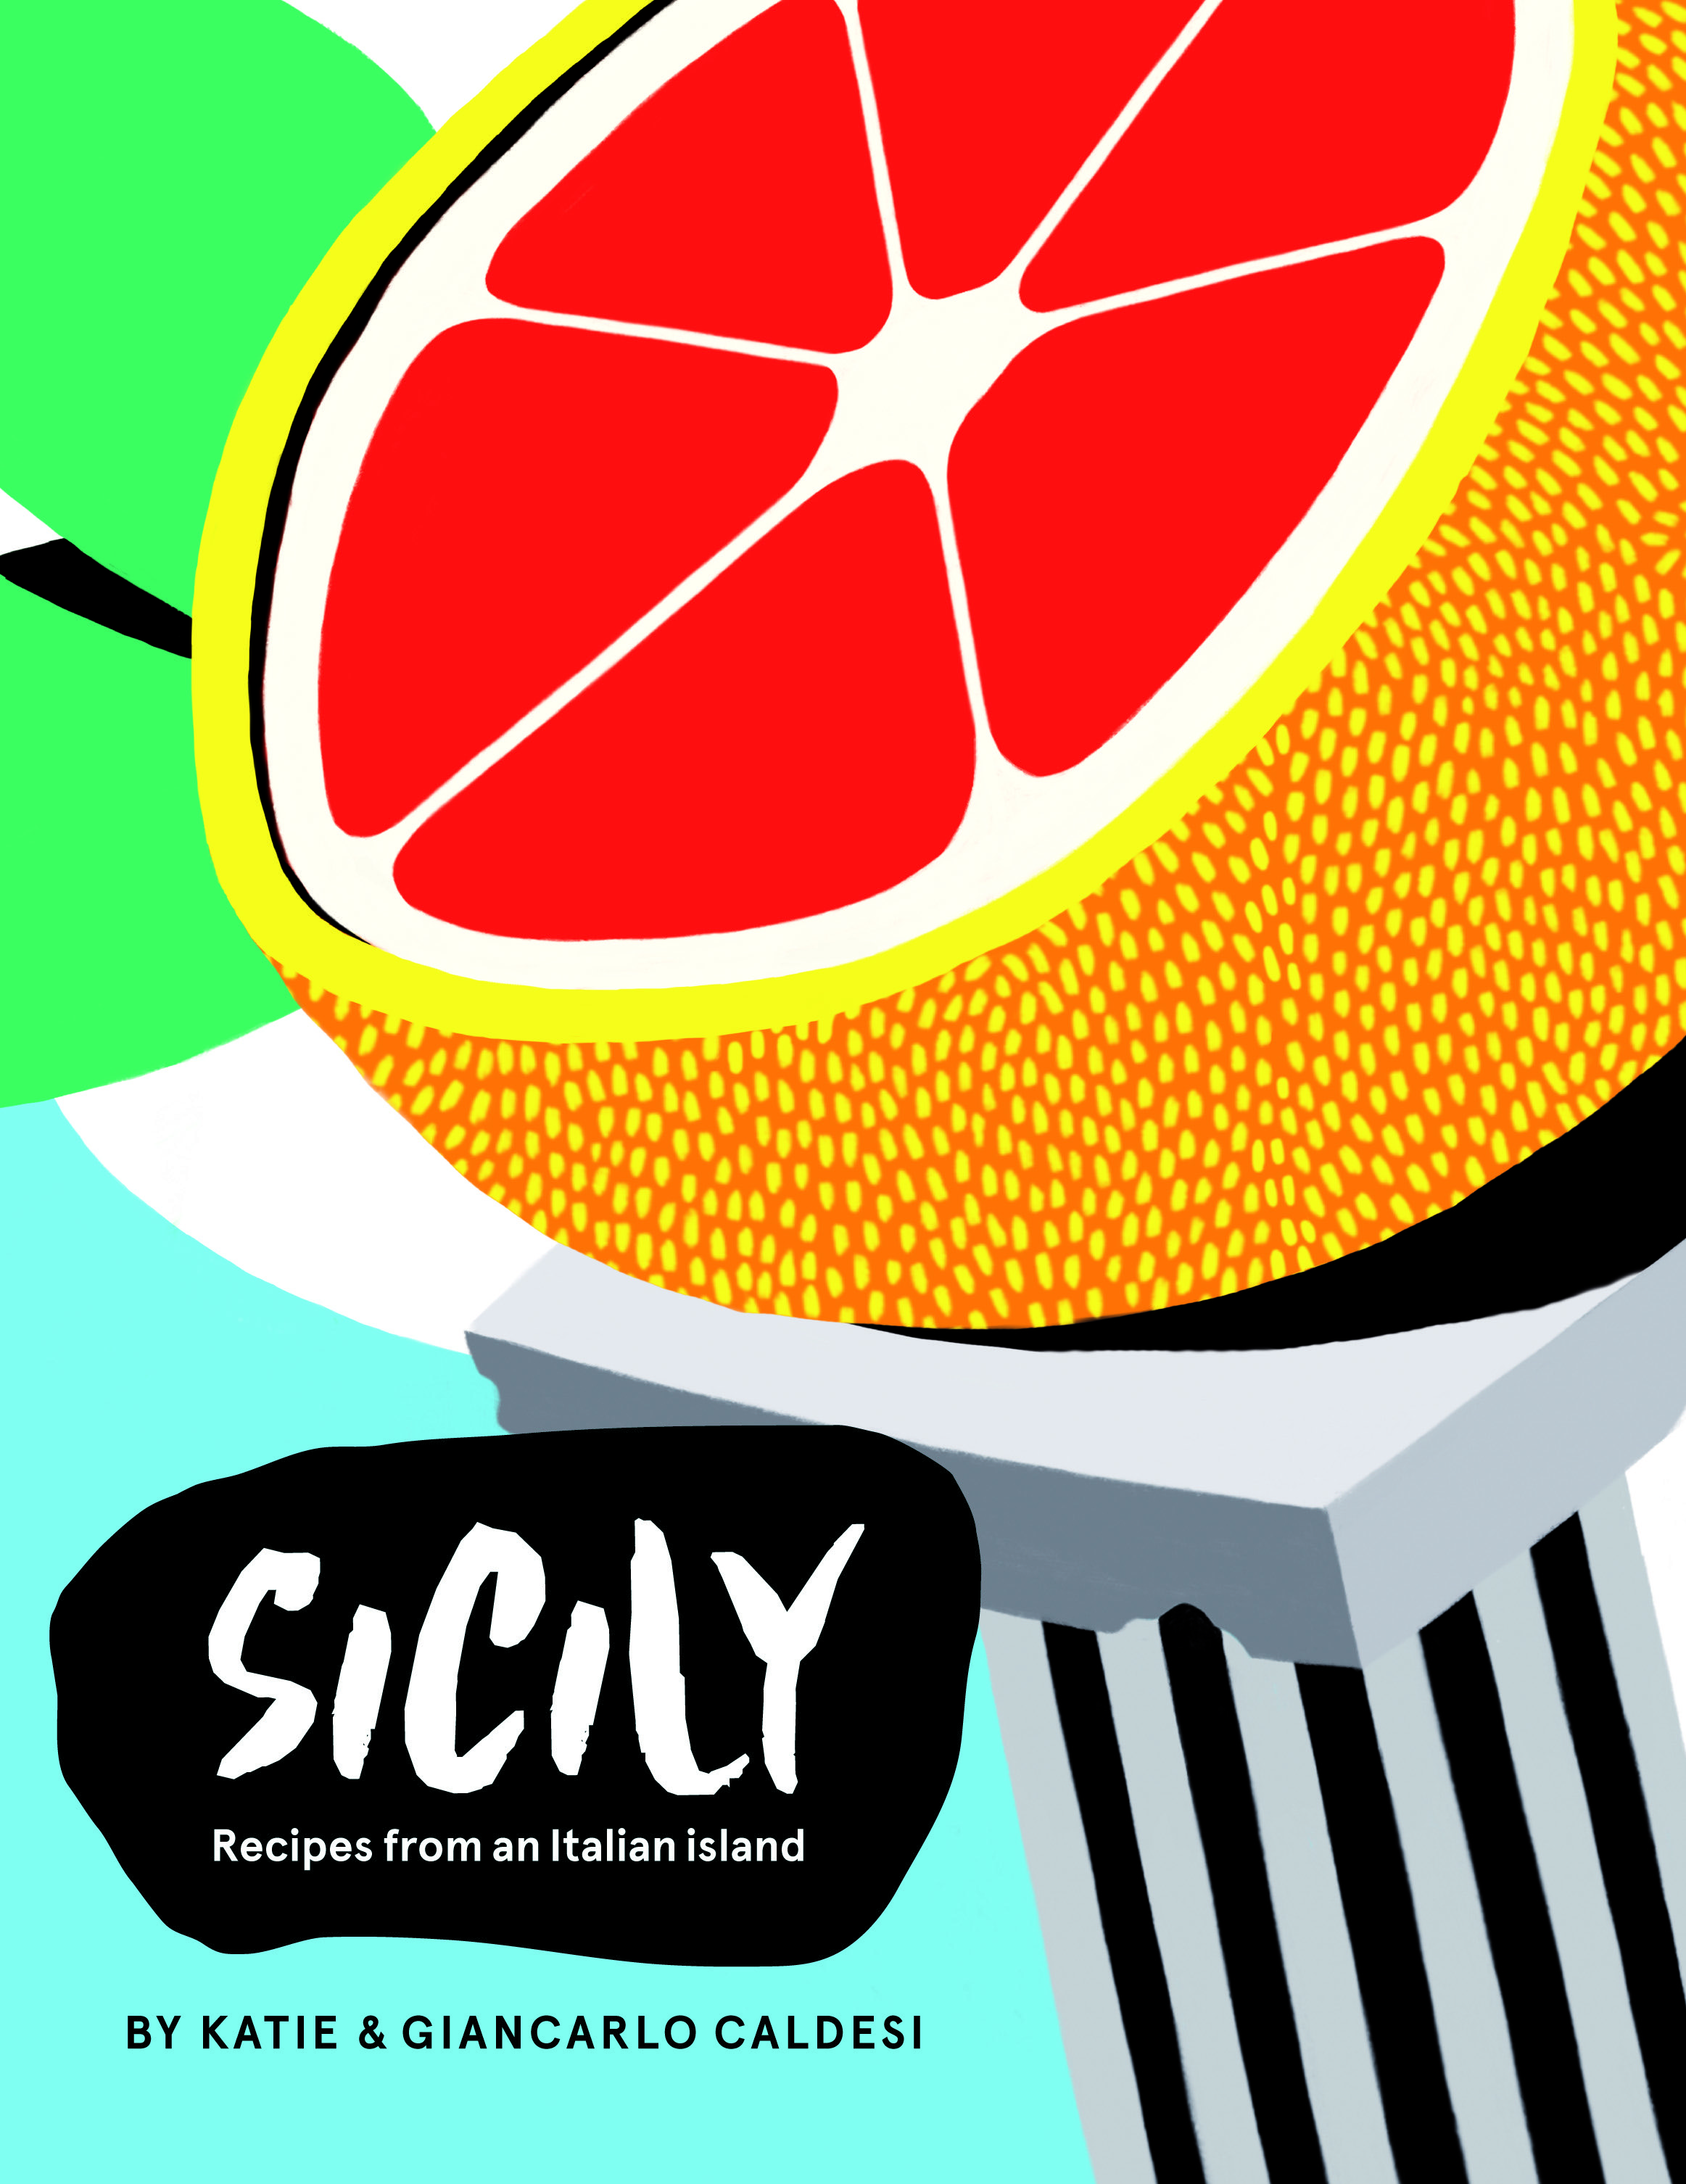 Cookbook review sicily recipes from an italian island cool cookbook review sicily recipes from an italian island forumfinder Images